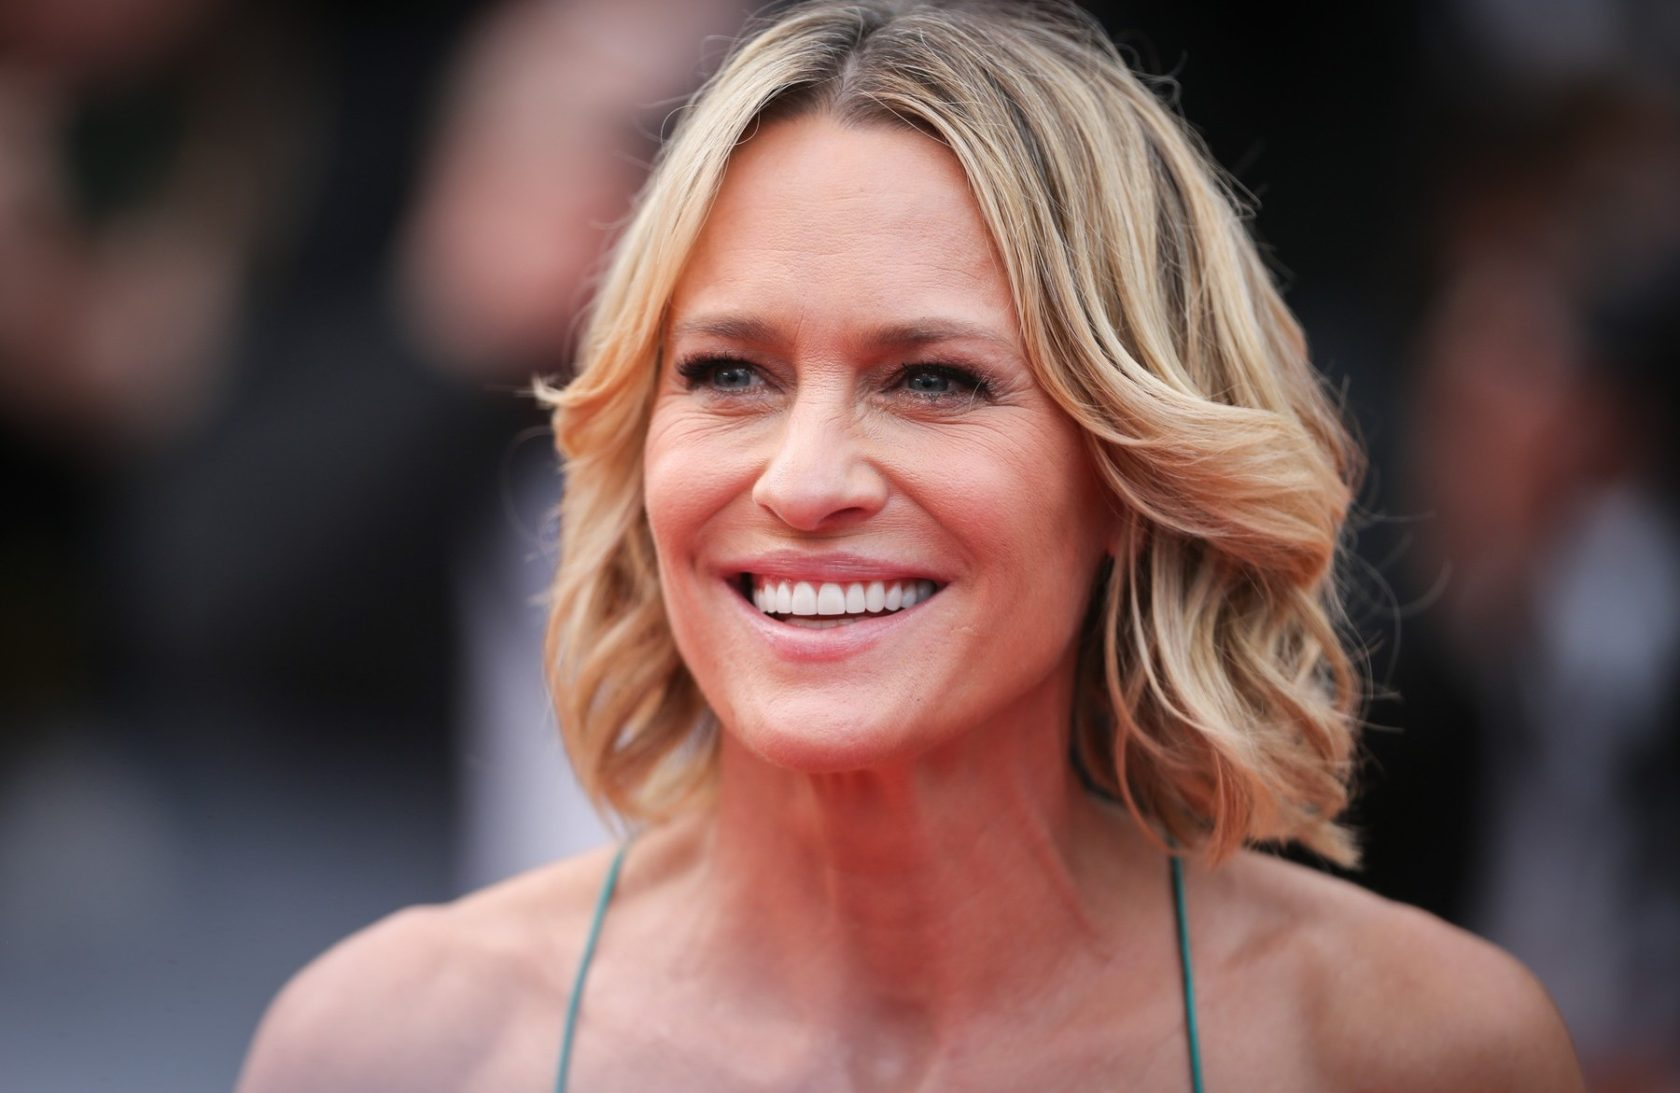 Director Robin Wright of 'The Dark of Night' attends the 'Loveless (Nelyubov)' screening during the 70th annual Cannes Film Festival at Palais des Festivals on May 18, 2017 in Cannes, France, Image: 332756326, License: Rights-managed, Restrictions: Worldwide rights, Model Release: no, Credit line: Profimedia, Crystal pictures